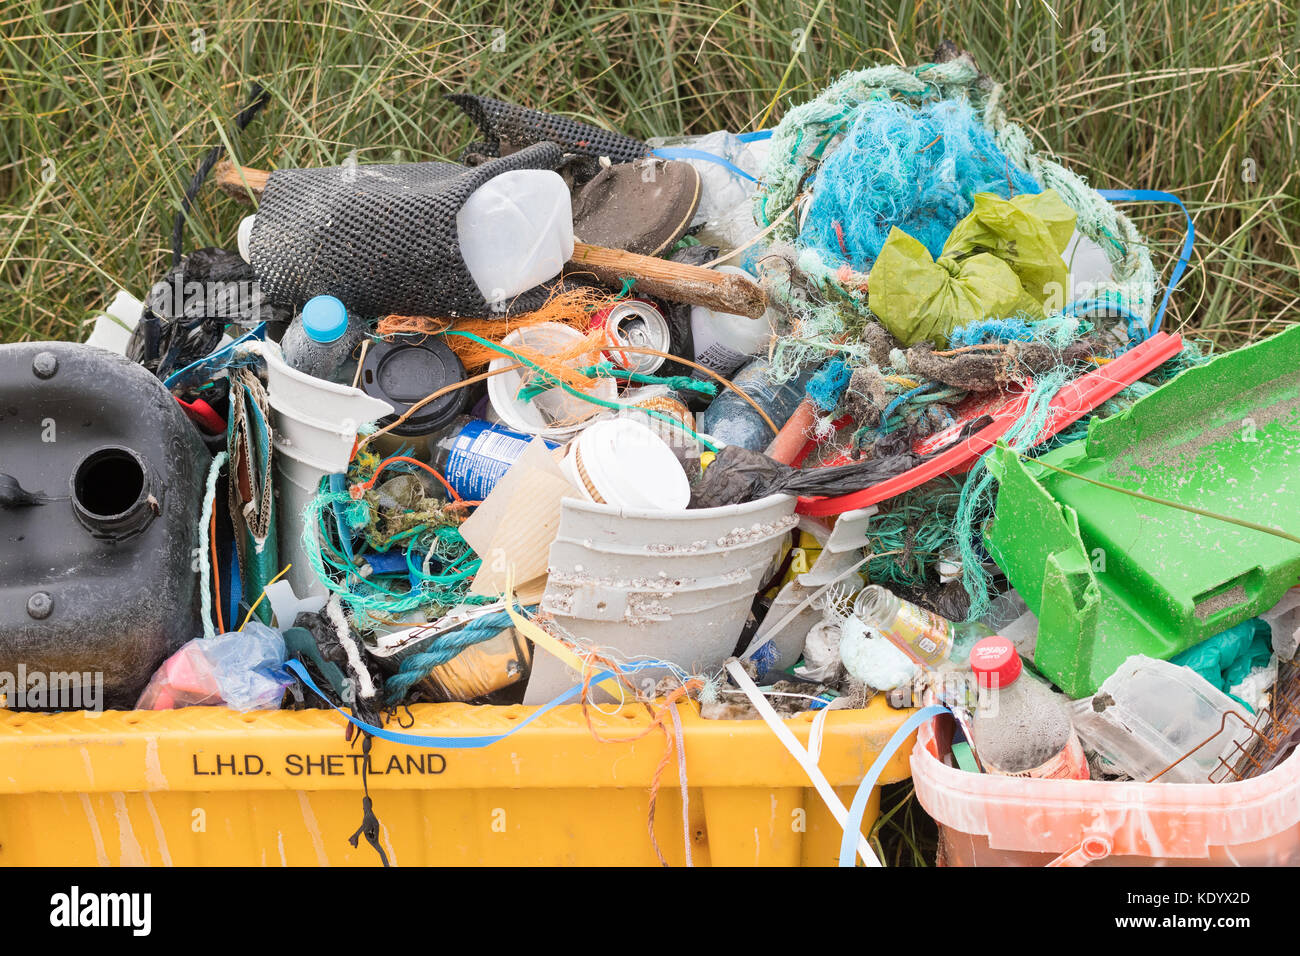 plastic and other rubbish collected from Shetland Islands beach, Scotland, UK - Stock Image